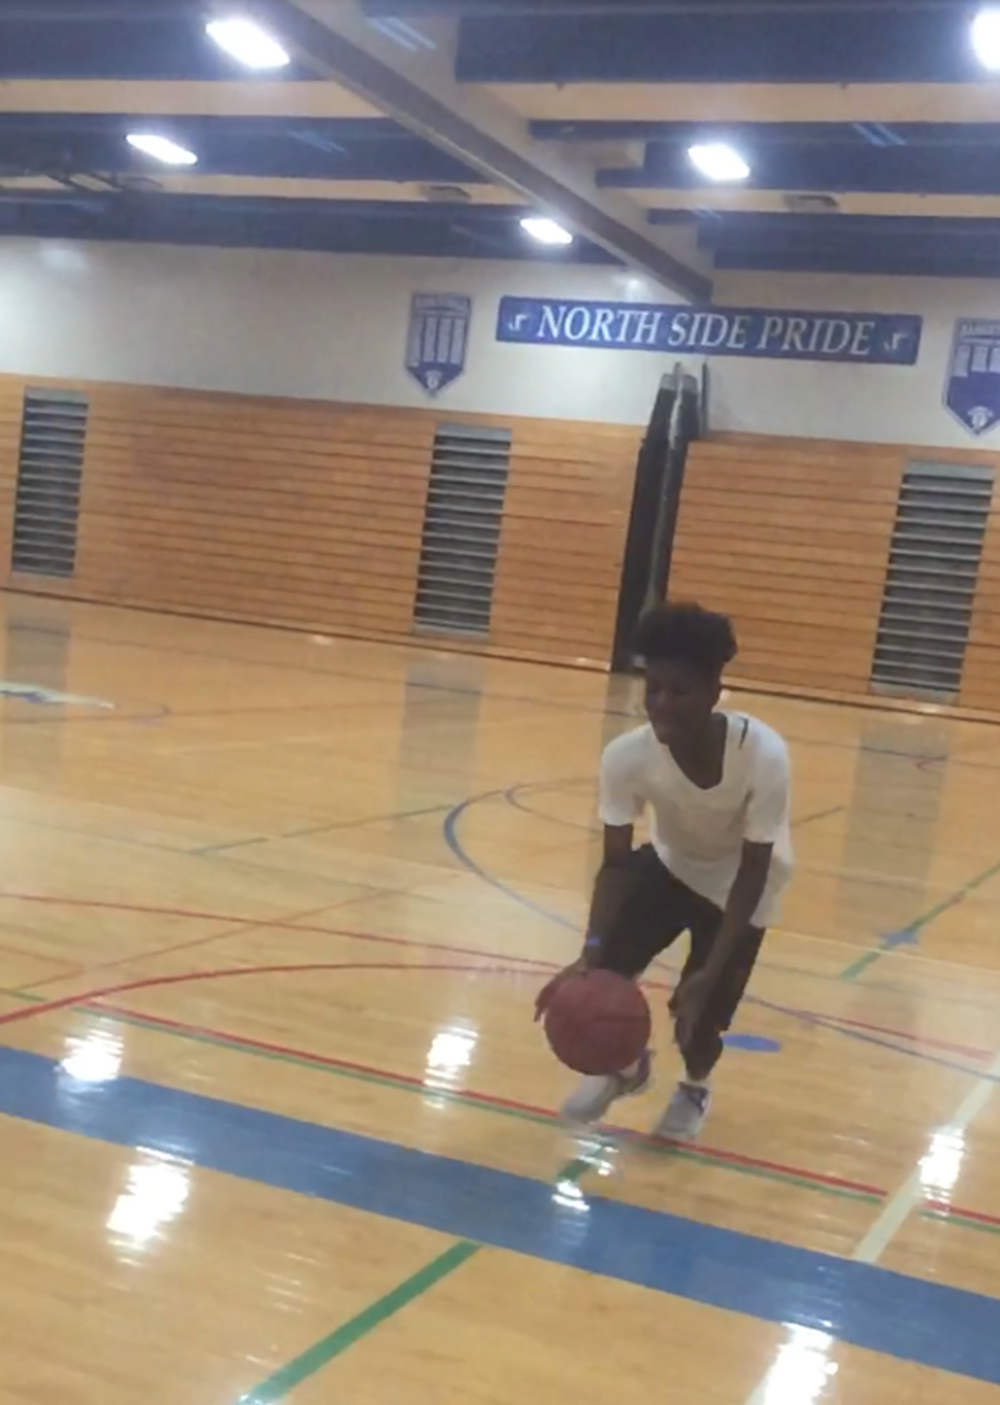 I practice on my own every day of the week but Fridays. That's when I play with my AAU team. This is me working out after school at North High just to get to the next level.  Greatness is not going to be handed to you. It's up to you if you are going to put in the work to get to the next level in your future. A reason I work out after school is because I know my family wants the best for me, and I have to put in the work to get them out of the hood.